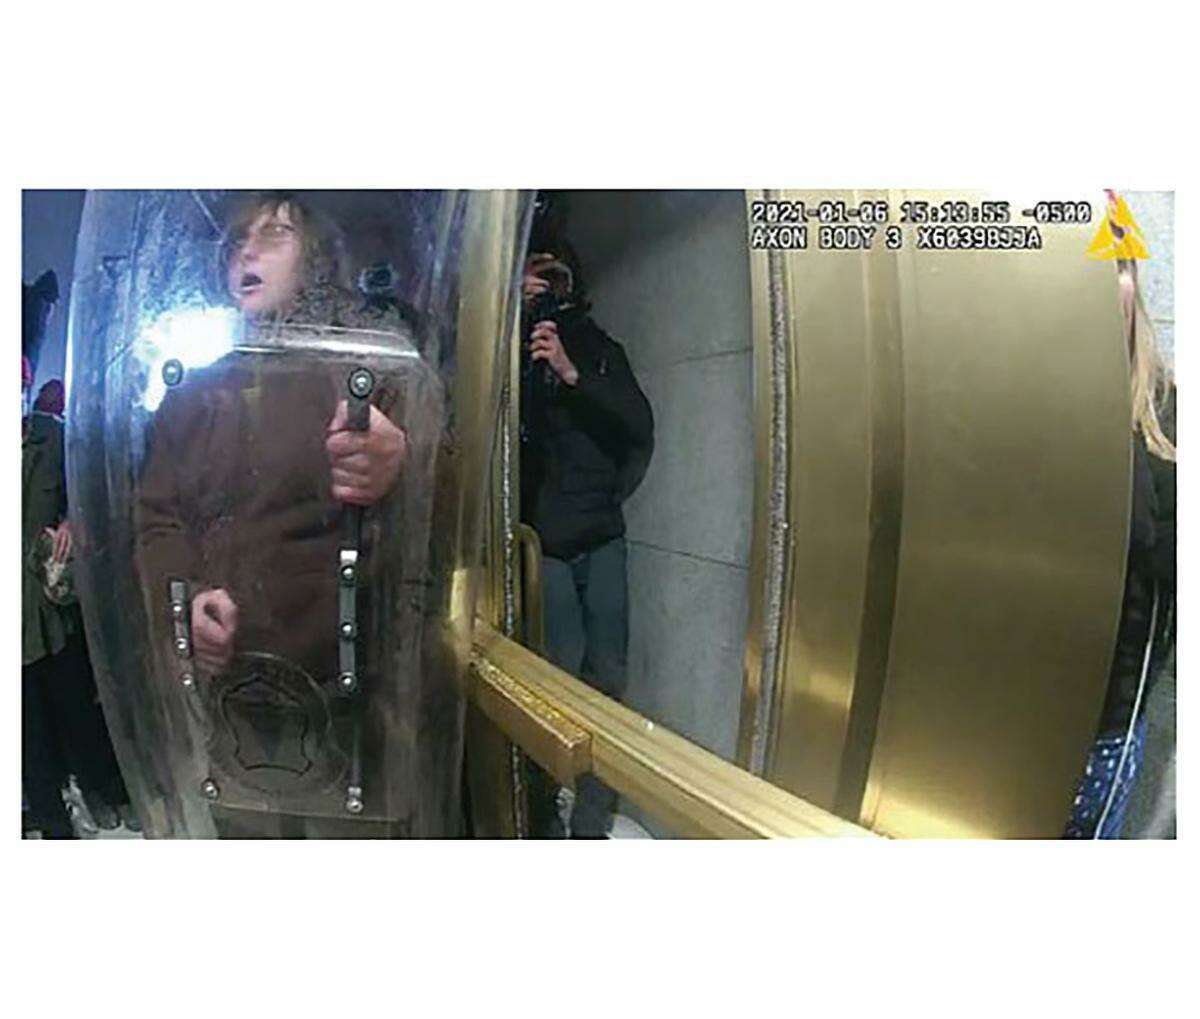 Patrick McCaughey, of Ridgefield, is seen holding a police shield, according to police, at the U.S. Capitol Jan. 6, 2021. McCaughey is still in police custody, but people who know him have written in support of his release.